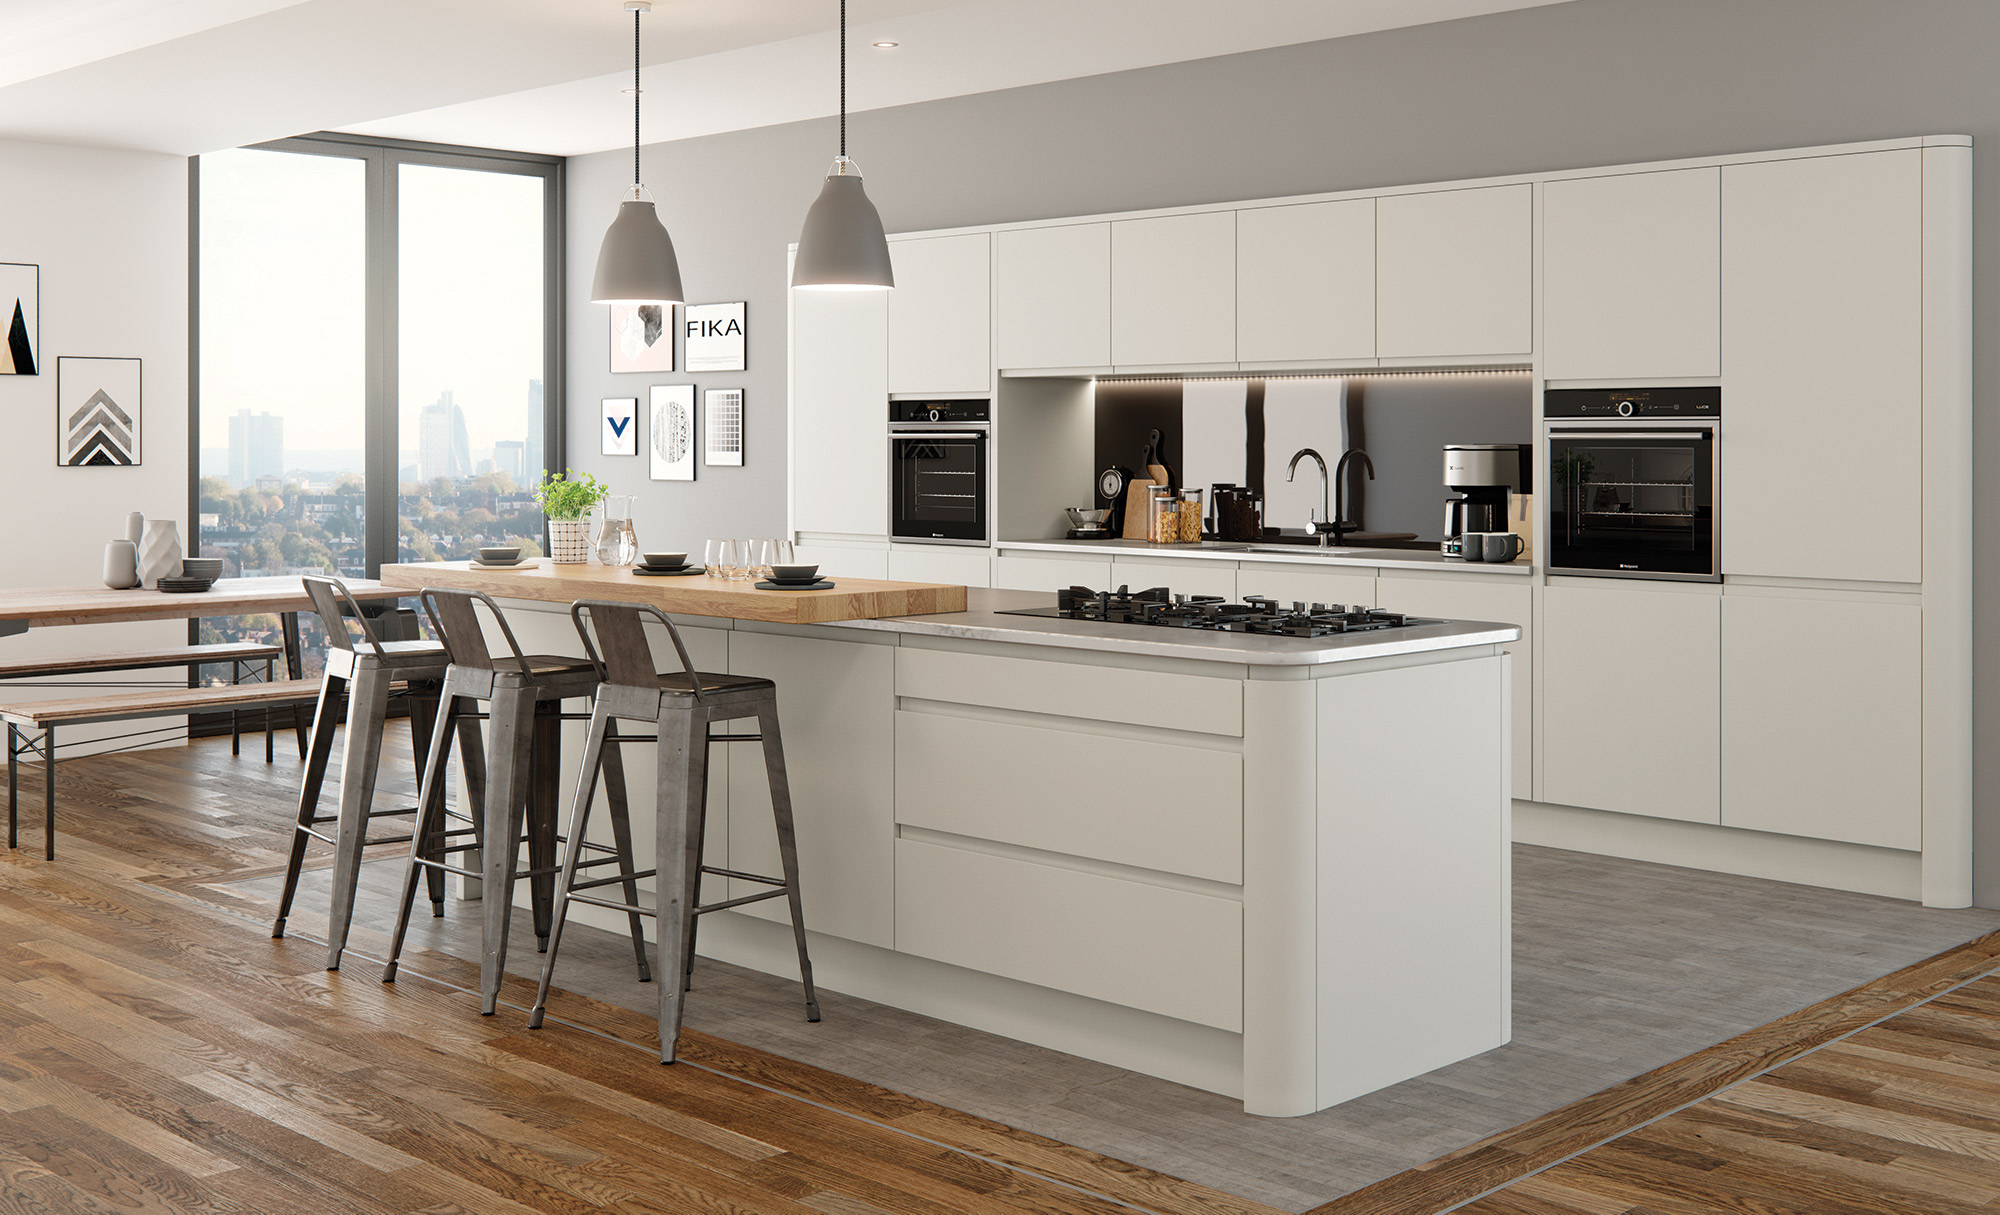 Strada matte contemporary porcelain kitchen stori for Kitchen contemporary style